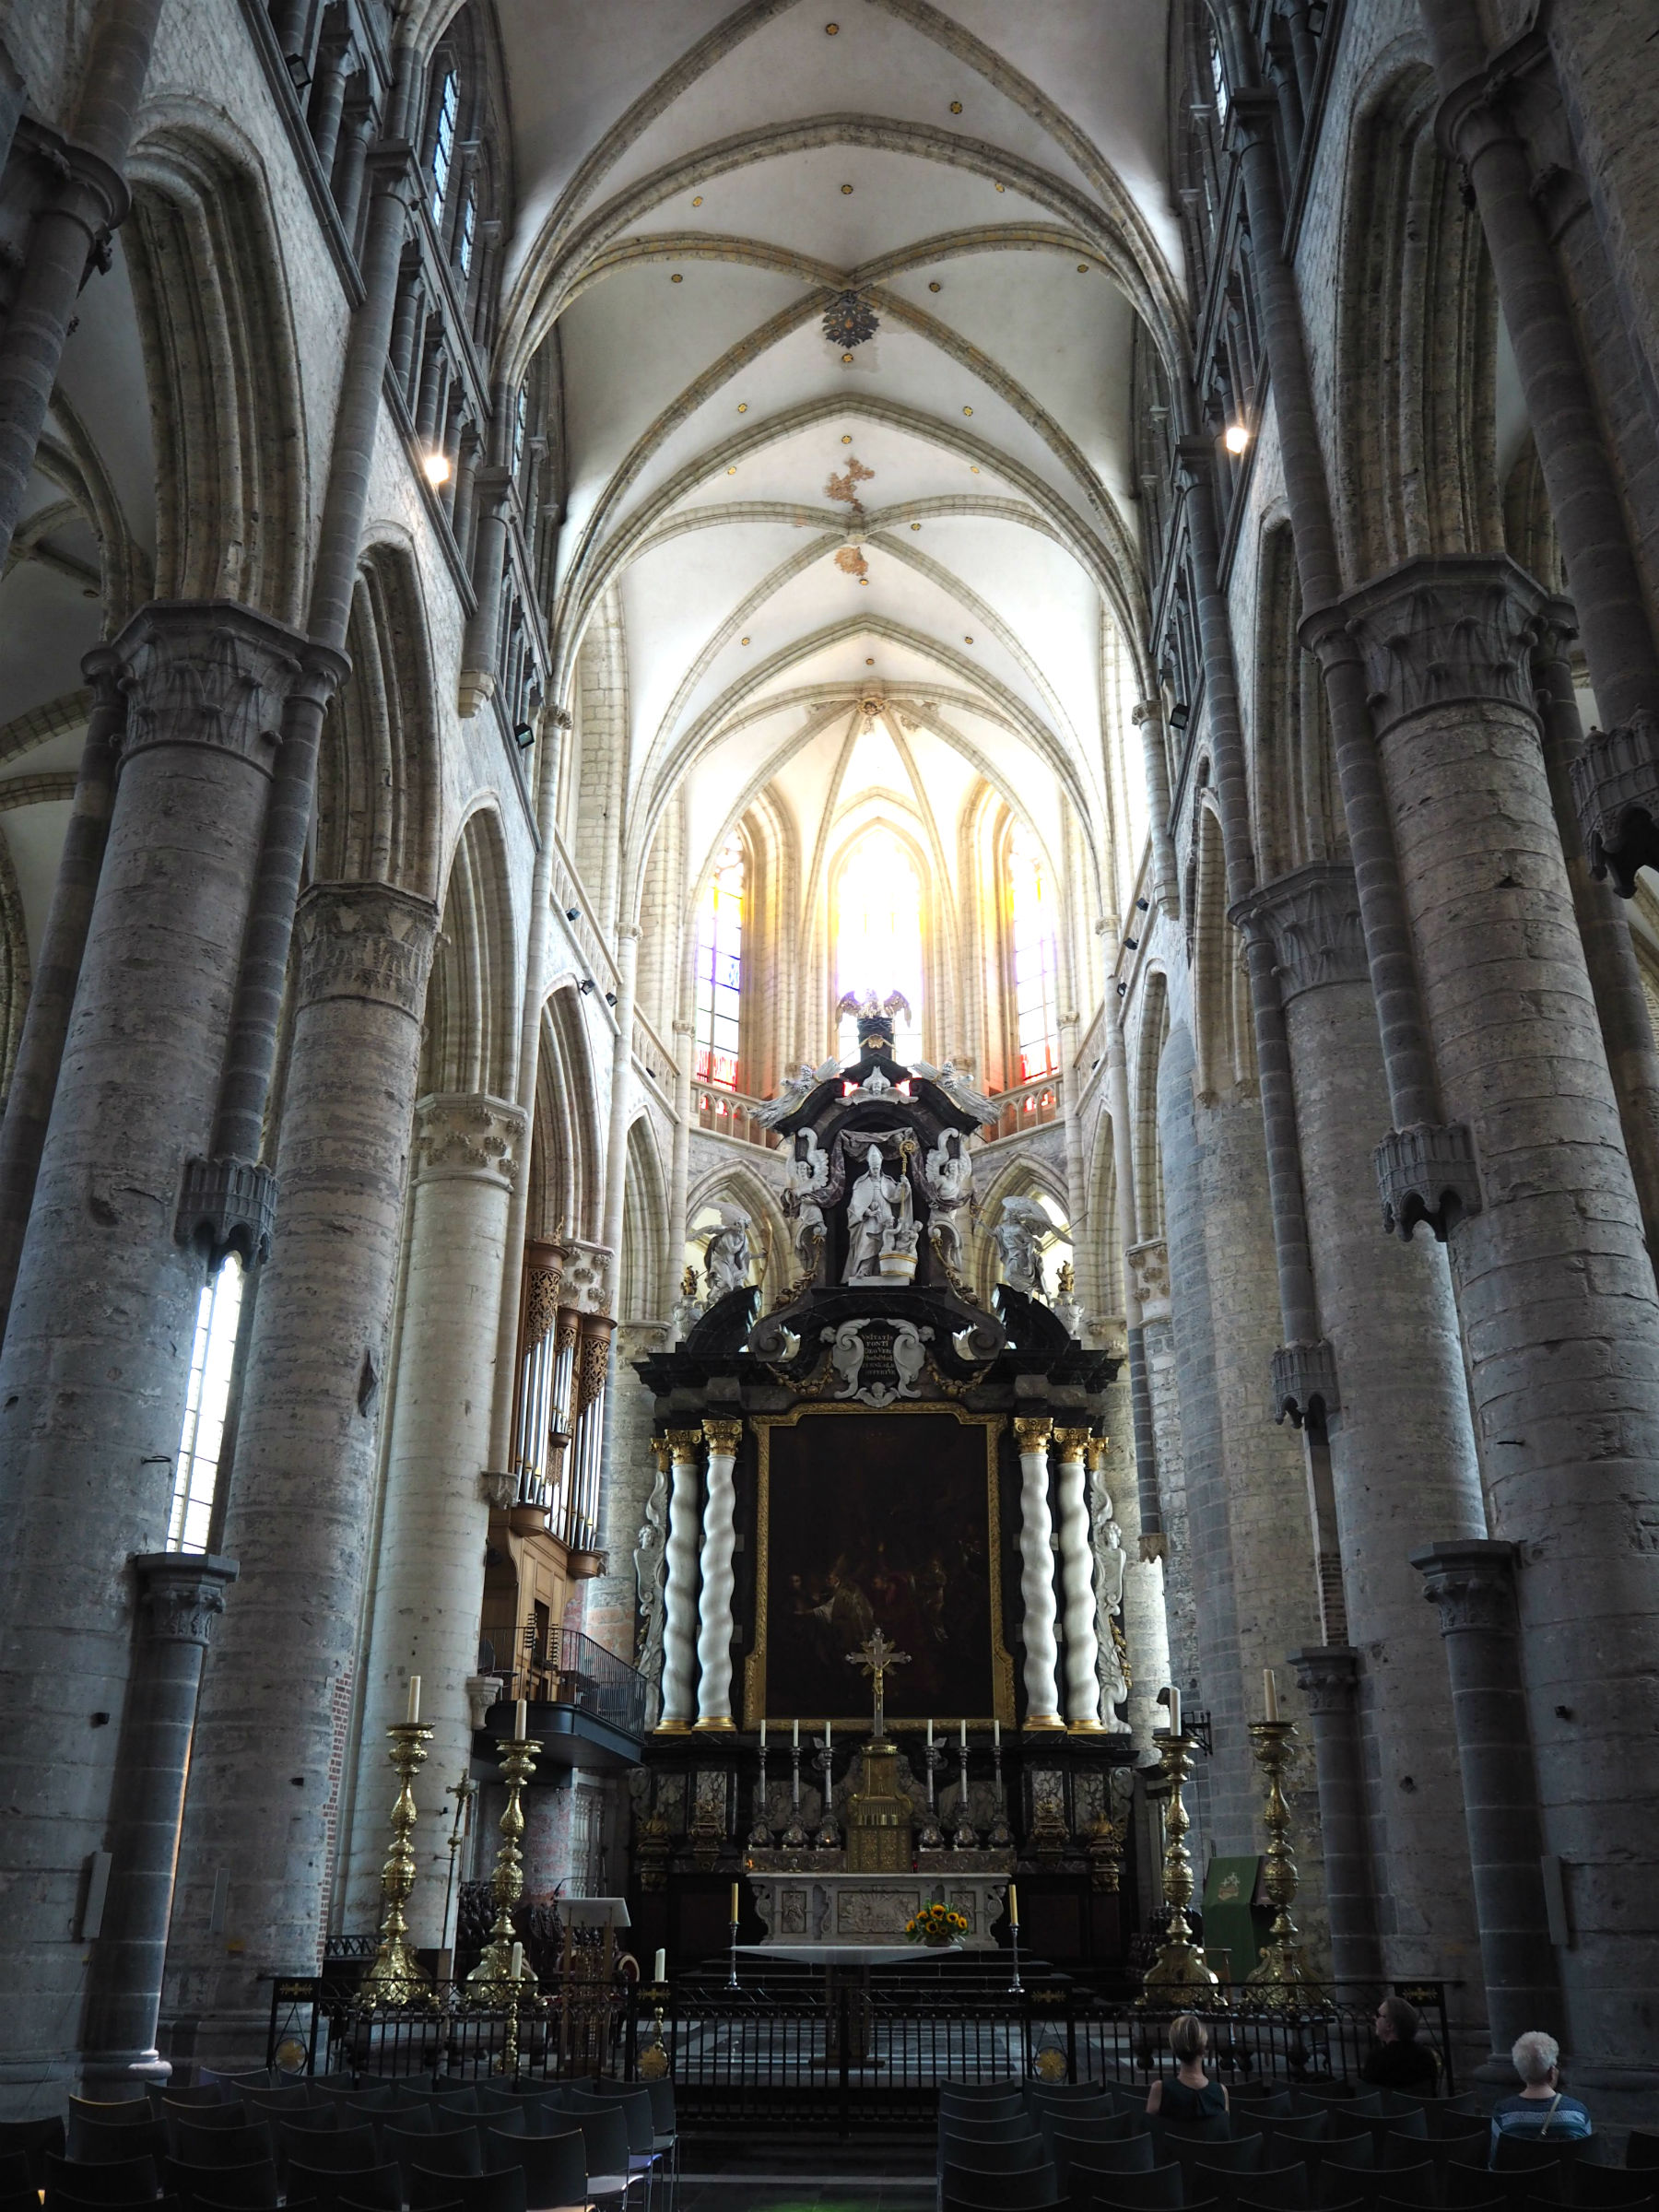 St. Nicholas Church in Ghent